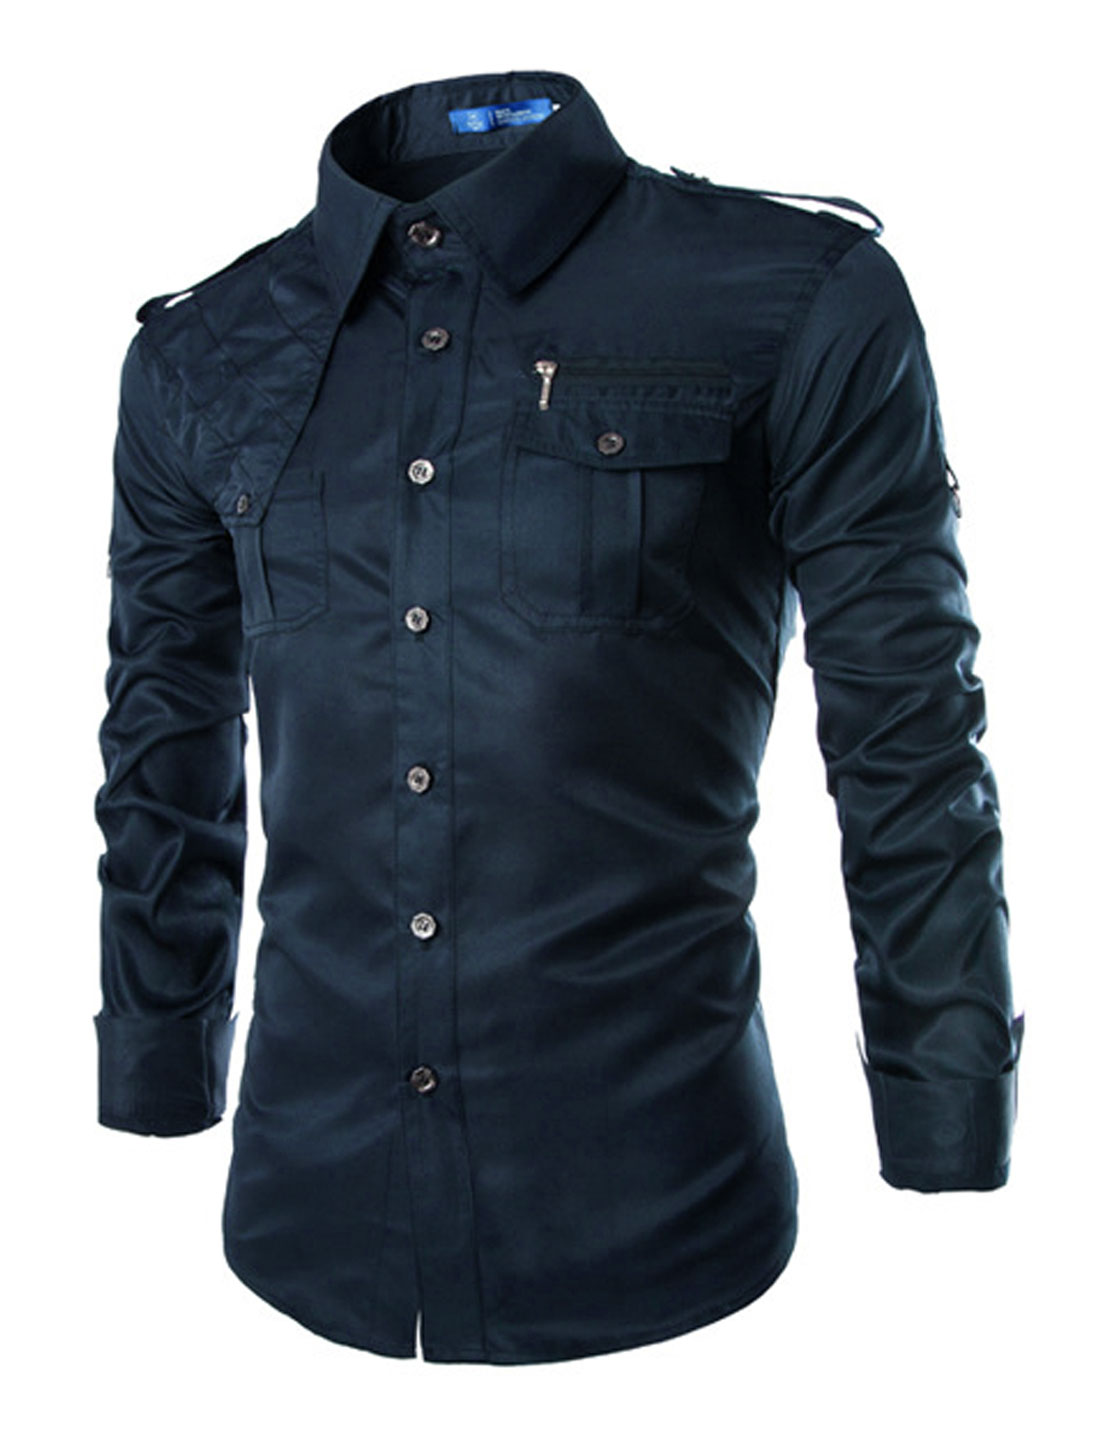 Men Point Collar Long Sleeves Chest Pockets Button Down Shirts Navy Blue M